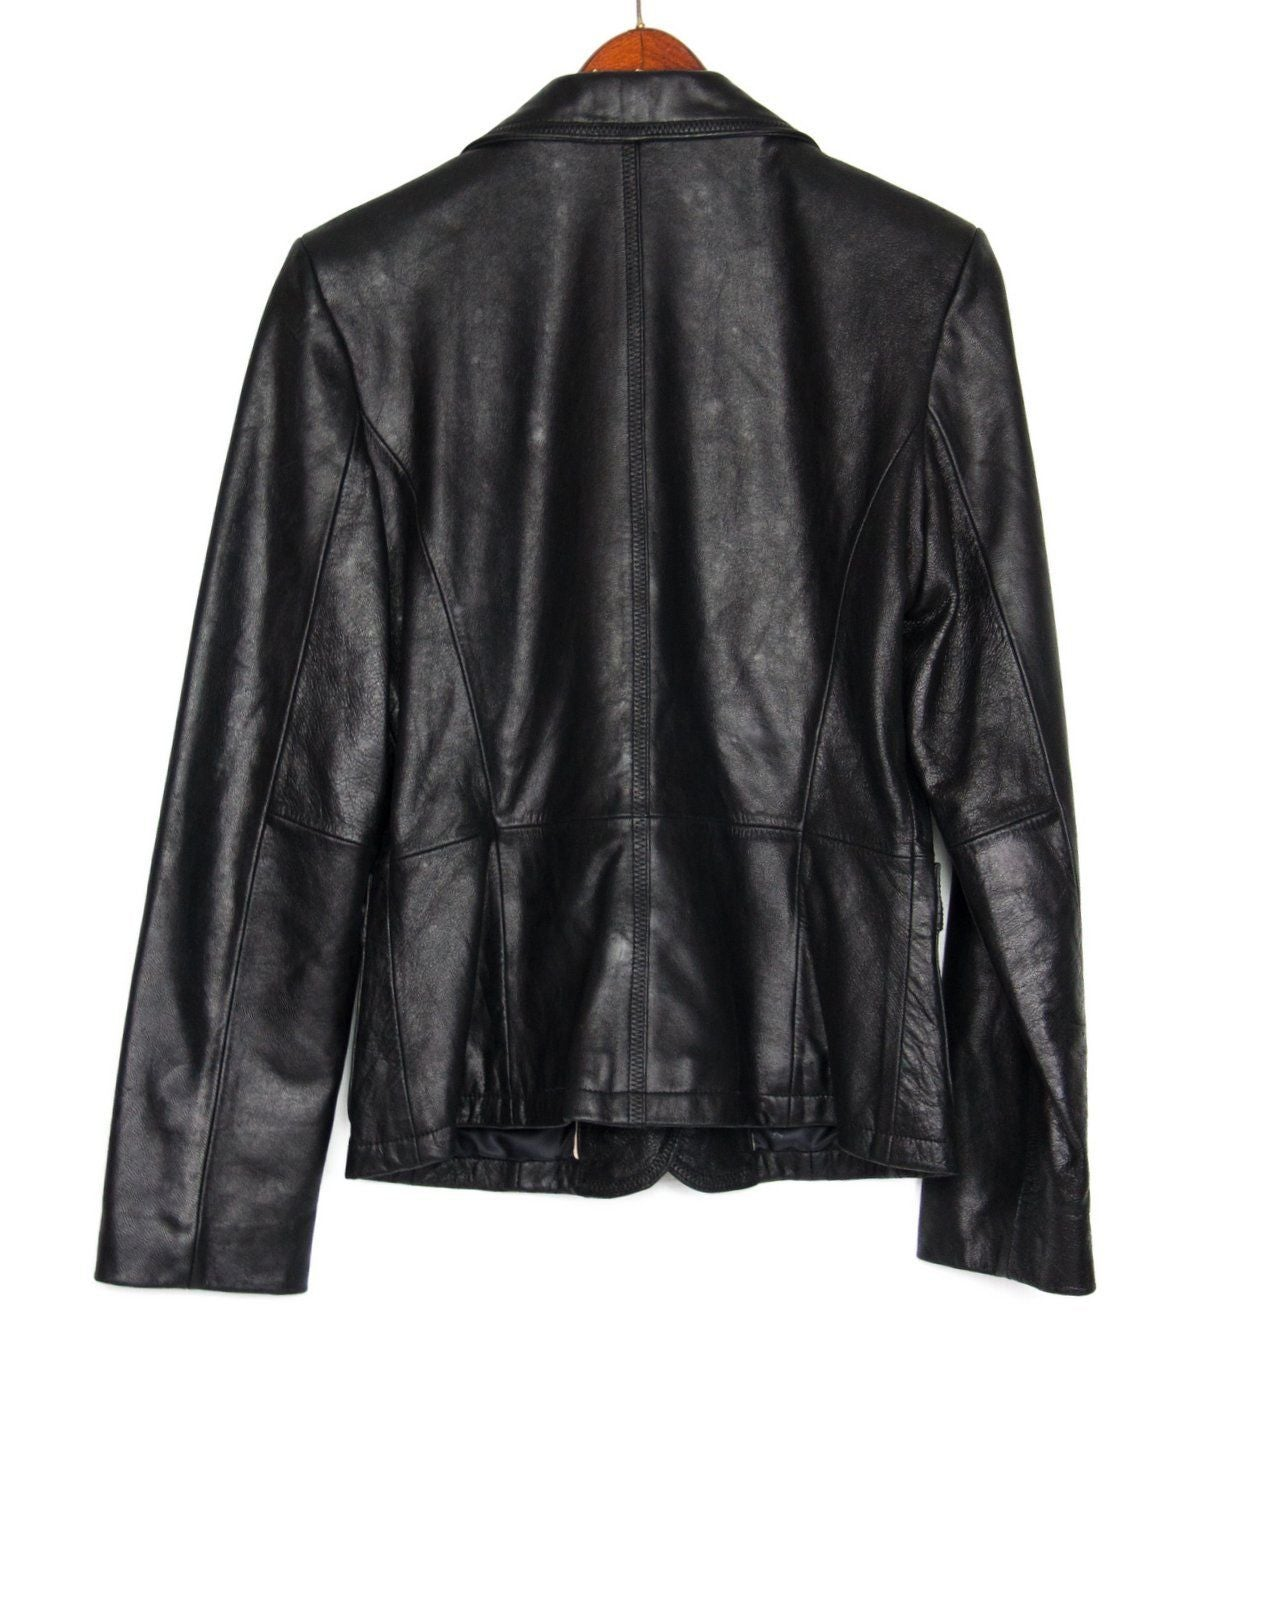 PETROFF Soft Leather Women's Jacket, S - secondfirst